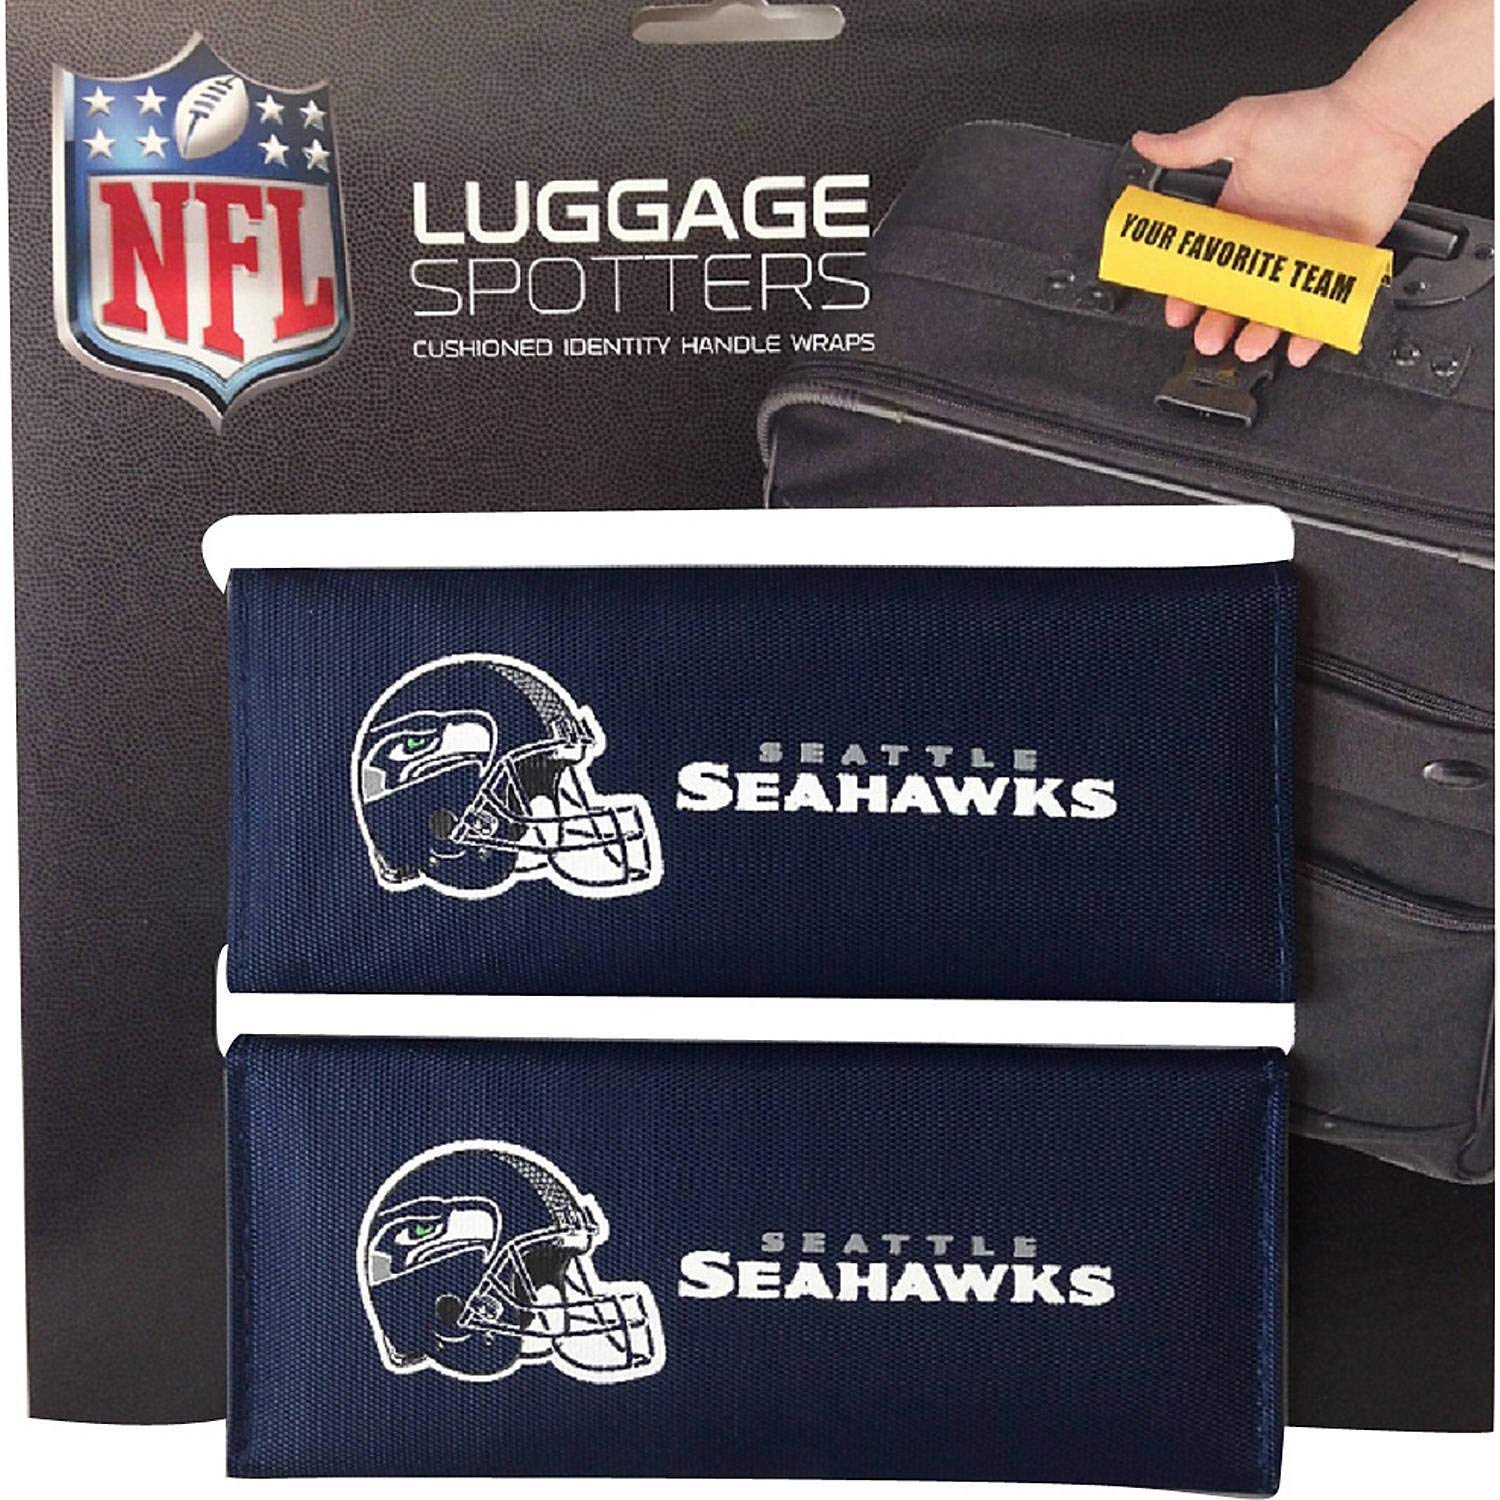 BUY ONE GET ONE FREE! SEAHAWKS Luggage Spotter Suitcase Handle Wrap Bag Tag Locator with I.D. Pocket (4-pk) - CLOSEOUT! SELLING FAST! Matrix Source SEAHAWKBL